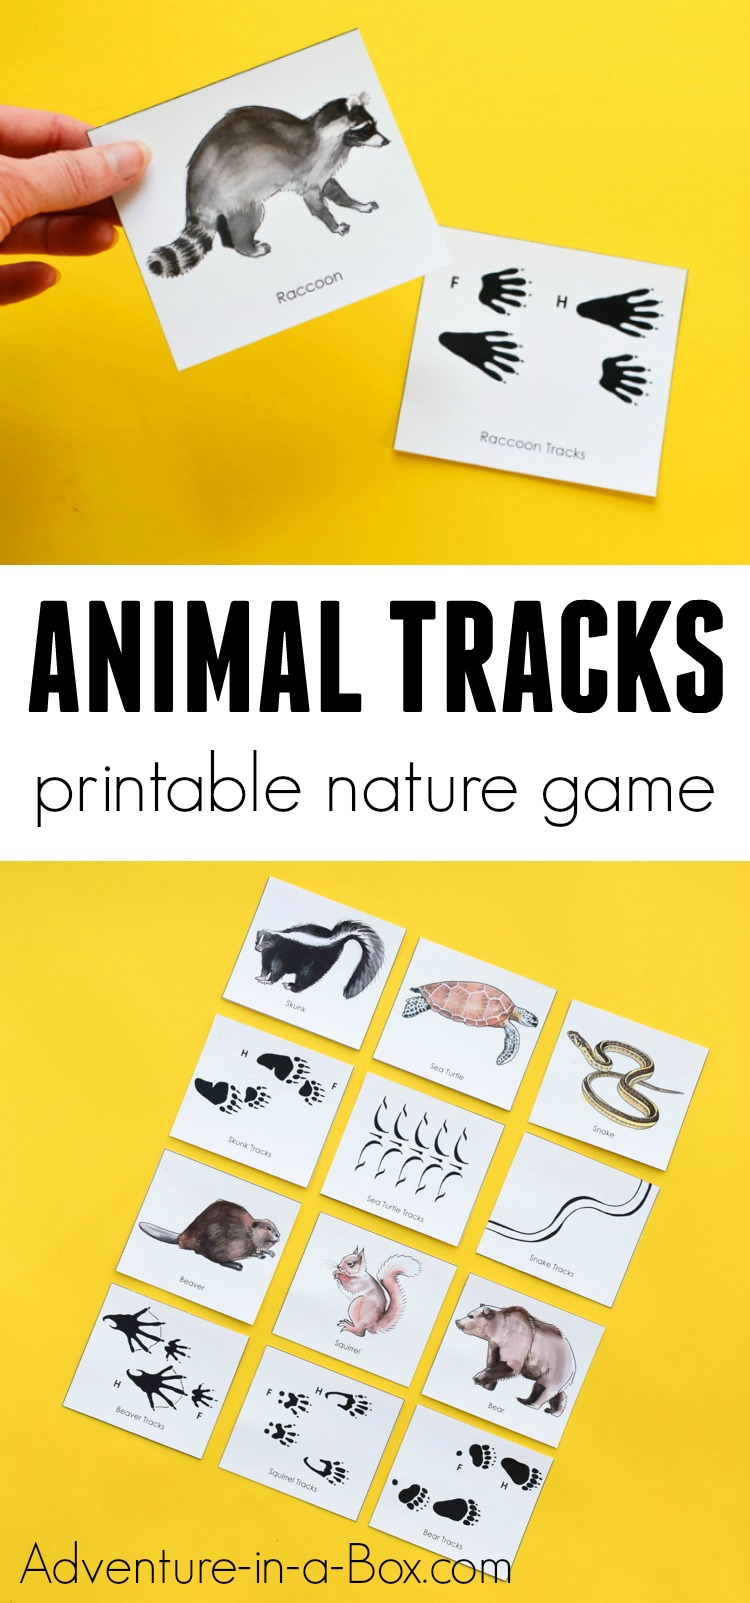 Animal Tracks Printable Nature Game For Kids Animal Activities For Kids Printable Games For Kids Kids Learning Activities [ 1603 x 750 Pixel ]